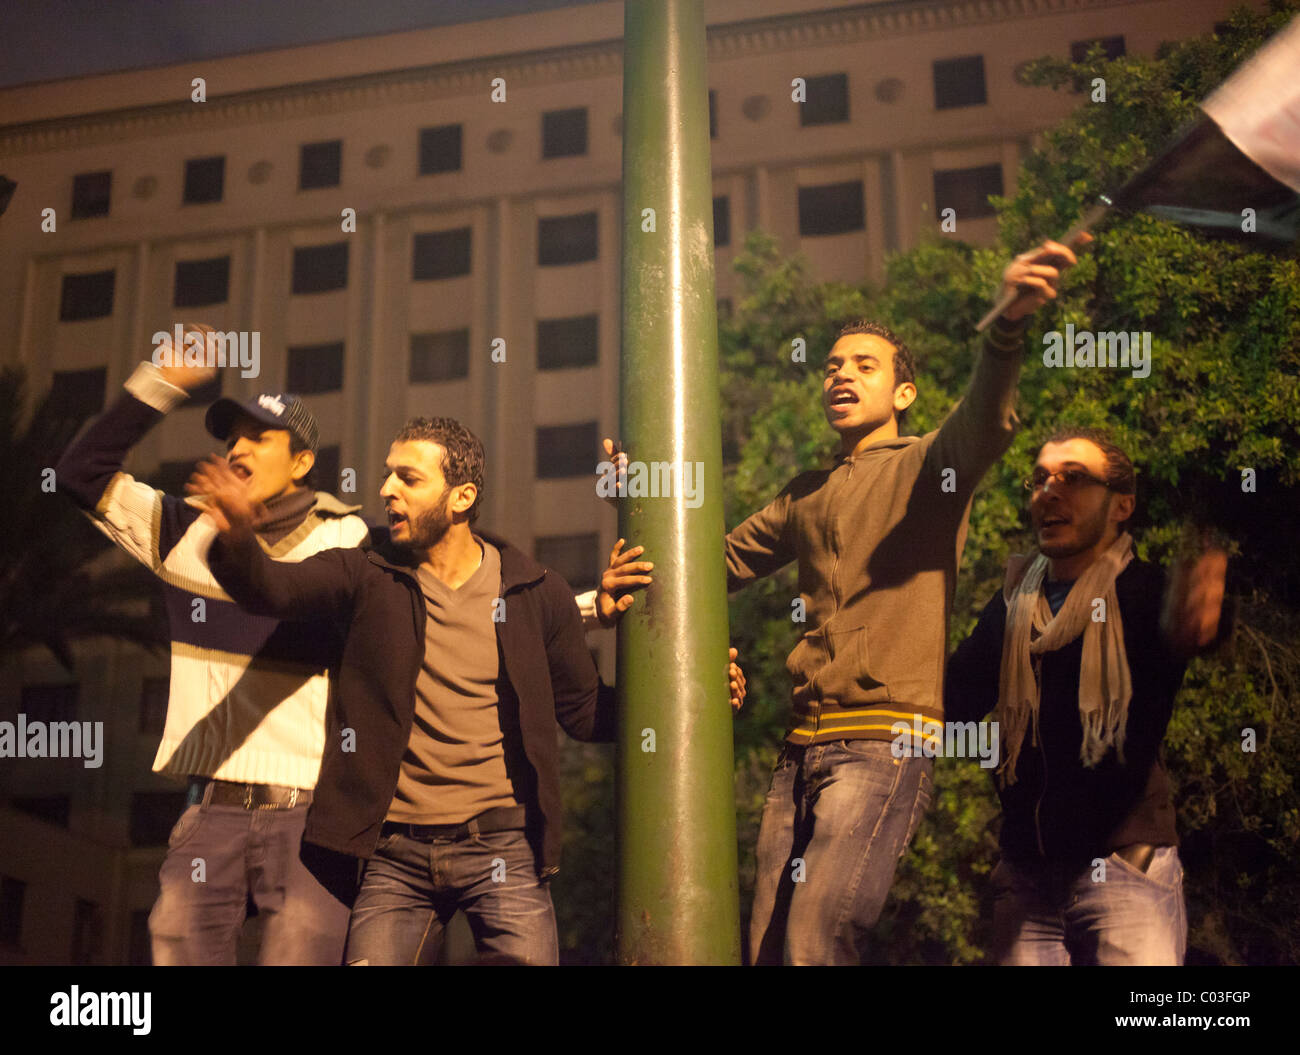 Egyptian demonstrators celebrating victory in the revolution at Tahrir on top of fence - Stock Image